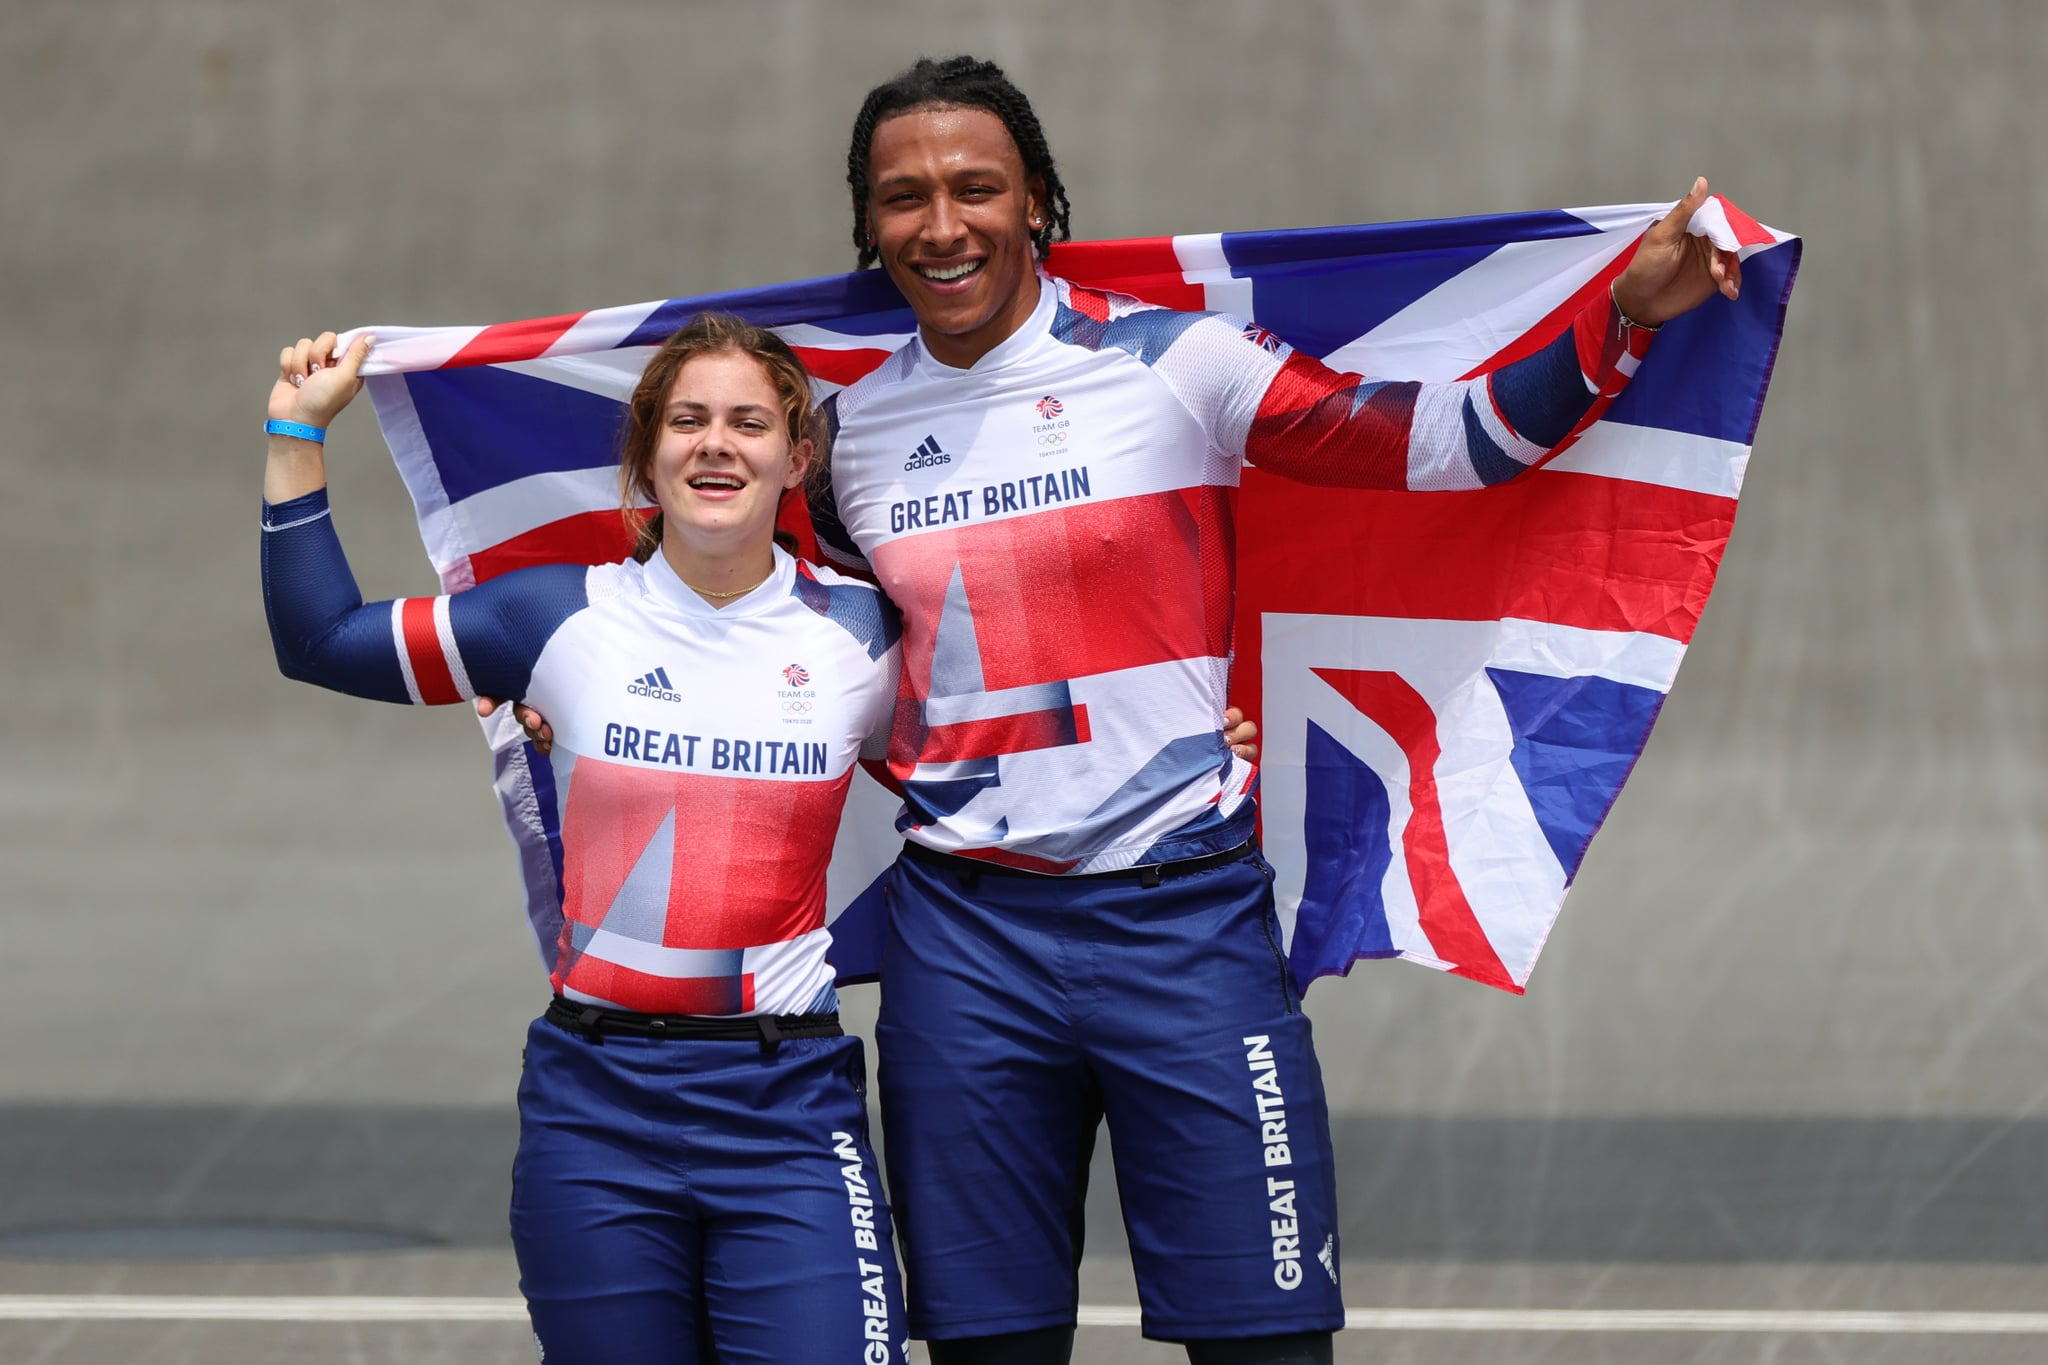 TOKYO, JAPAN - JULY 30: Bethany Shriever of Team Great Britain celebrates winning Gold with Kye Whyte of Team Great Britain Silver medalist in the Mens Final during the Men's Cycling BMX Racing Semifinal on Day 7 of the Tokyo 2020 Olympic Games at Ariake Urban Sports Park on July 30, 2021 in Tokyo, Japan. (Photo by Pete Dovgan/Speed Media/Icon Sportswire via Getty Images)